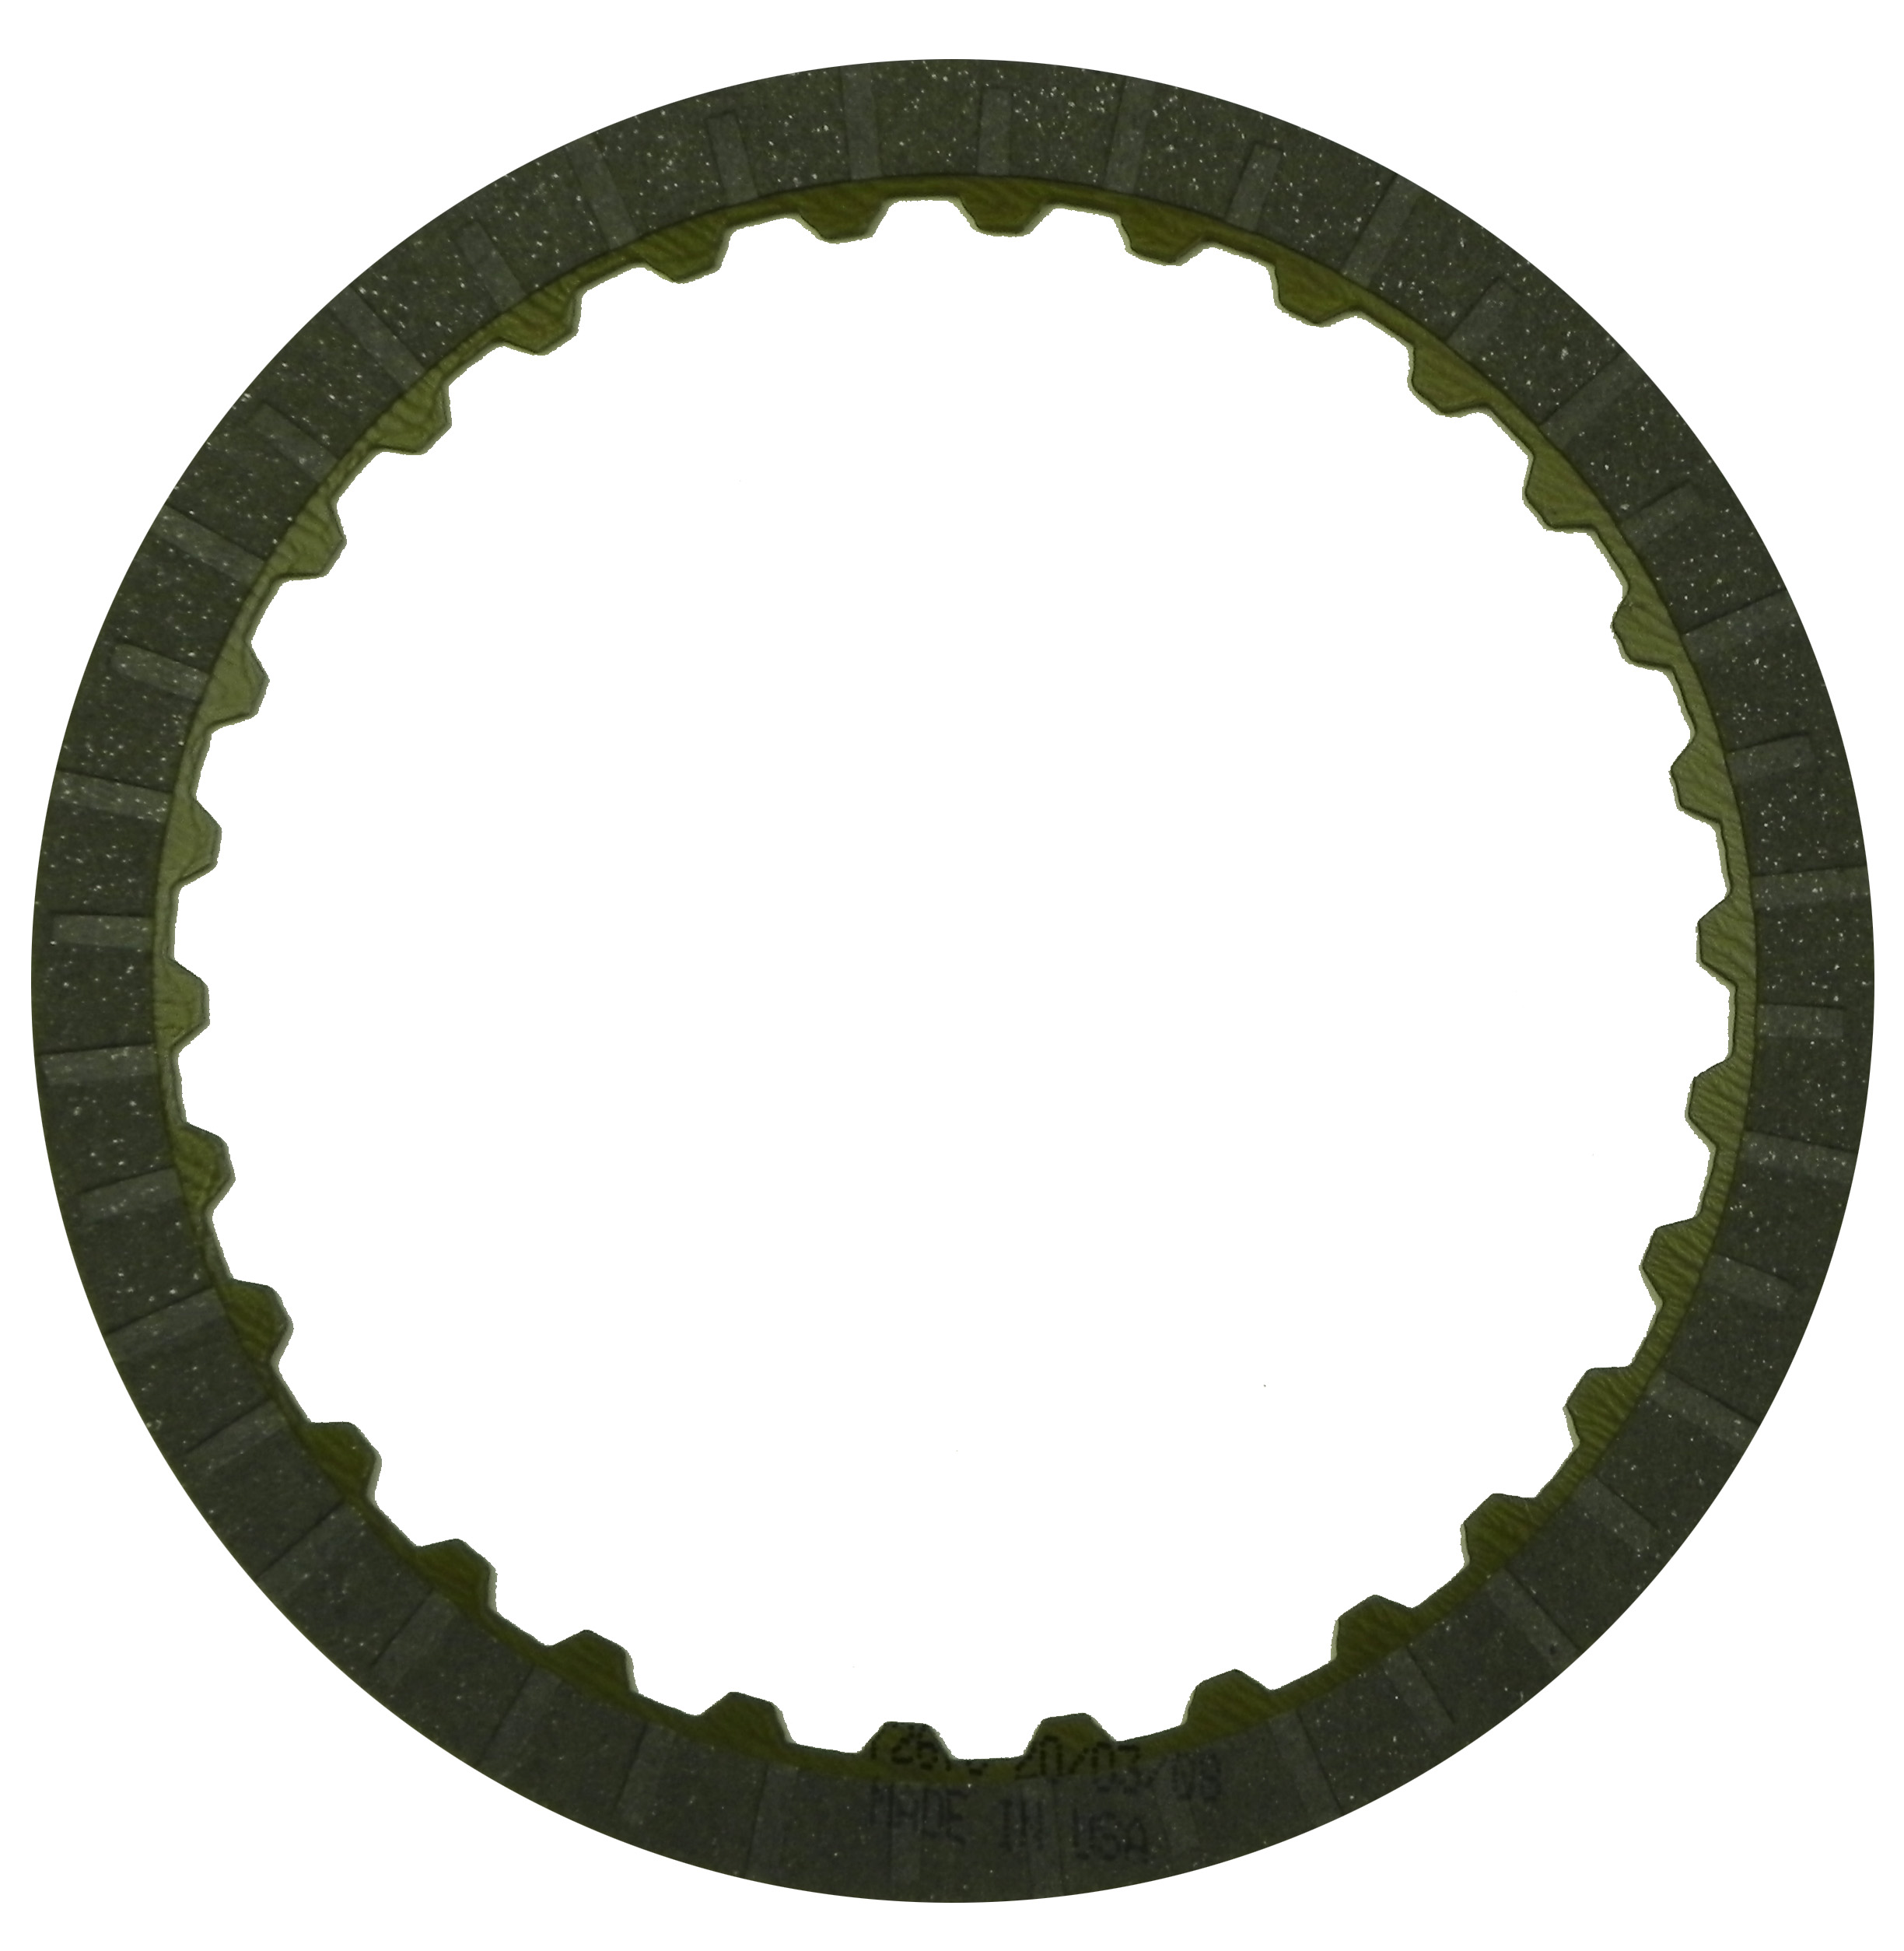 R572670 | 2004-ON Friction Clutch Plate High Energy C1 Forward High Energy